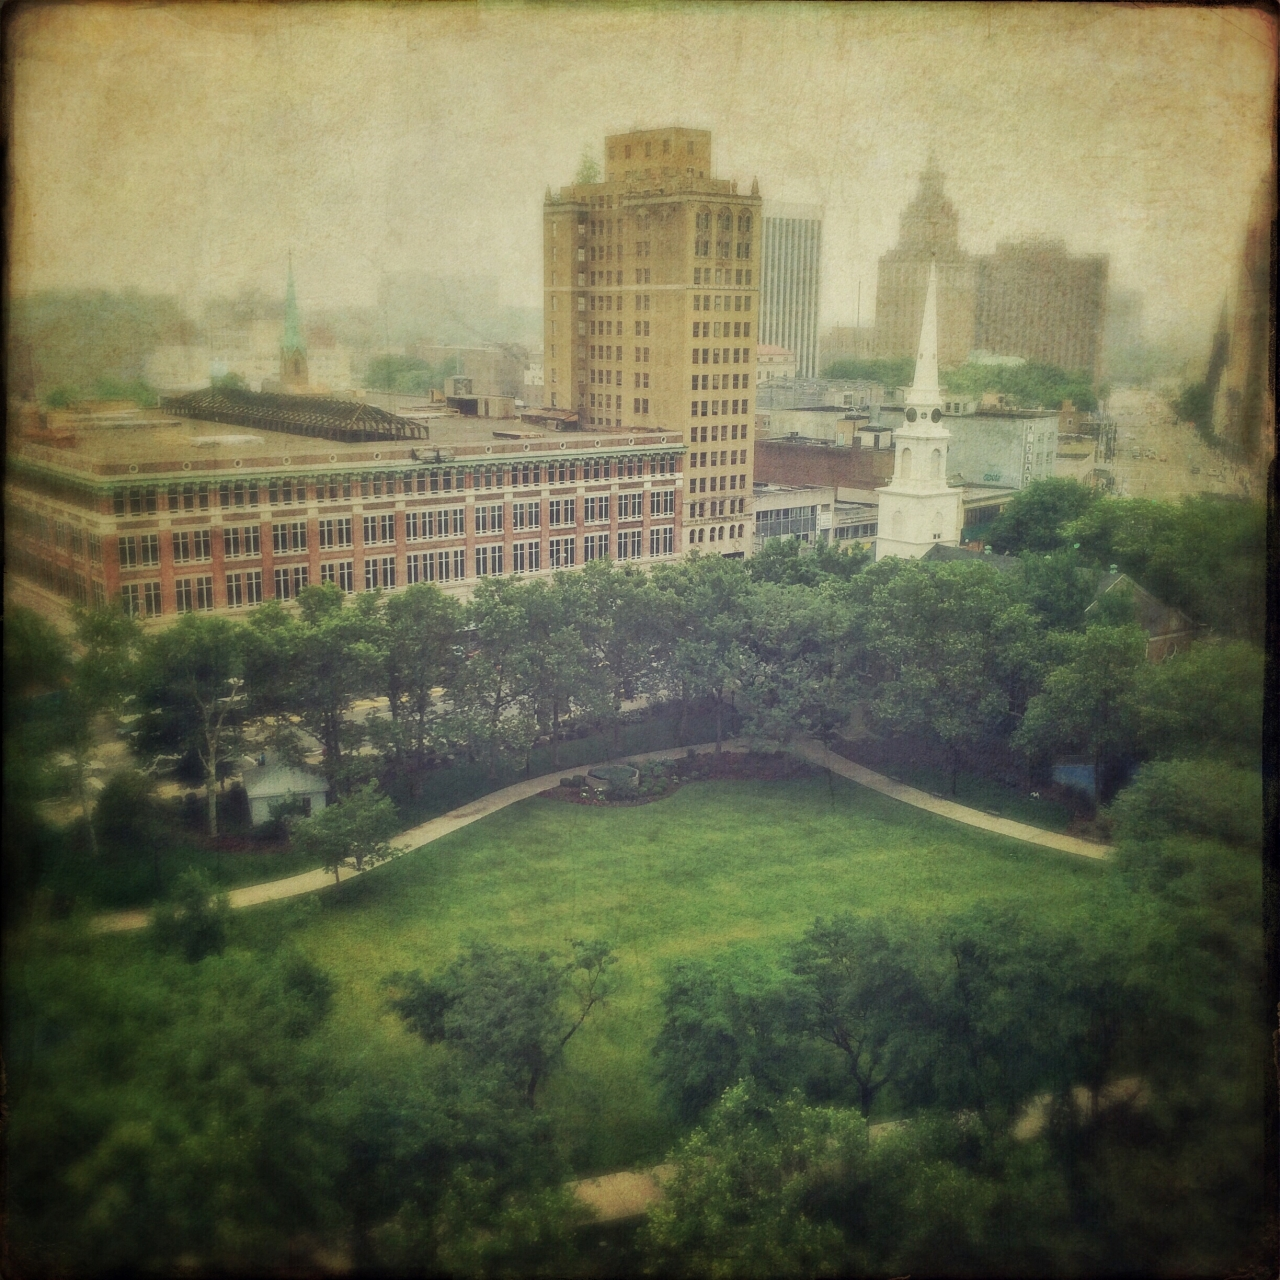 #21DaysWORLD #newjerseyusa<br /> Hipstamatic, Stackables, Snapseed